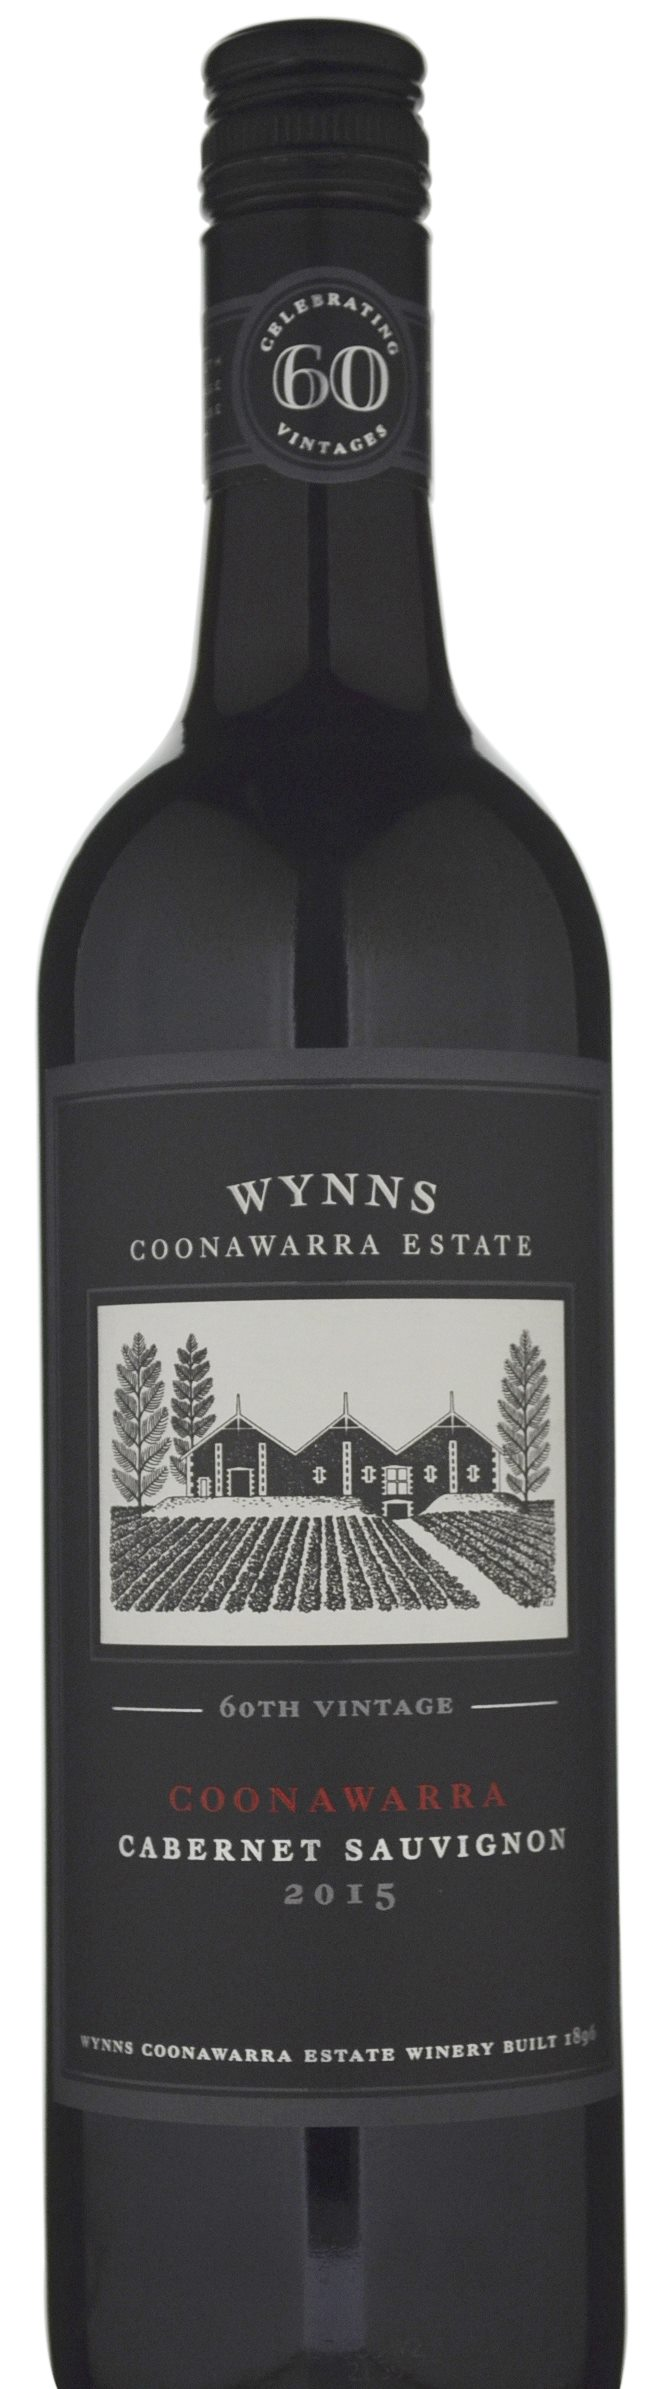 It's just a picture of Sassy Wynns Coonawarra Estate Black Label Cabernet Sauvignon